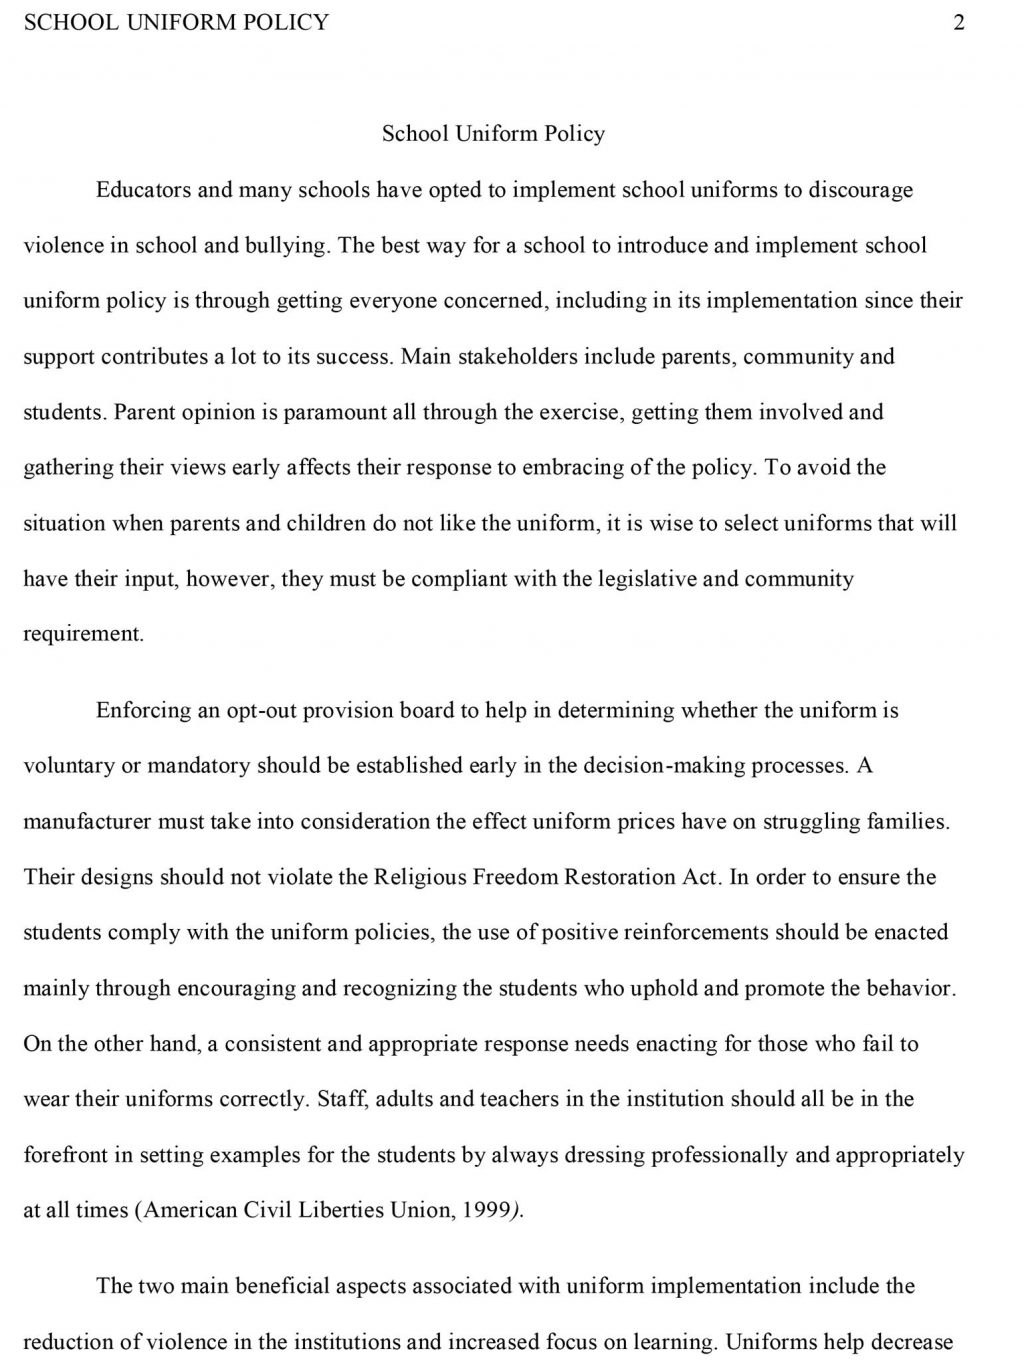 007 Research Paper How To Write Conclusion For Pdf Should Students Wear School20niforms Essay Title Argumentative Against Cons20 Amazing A Full